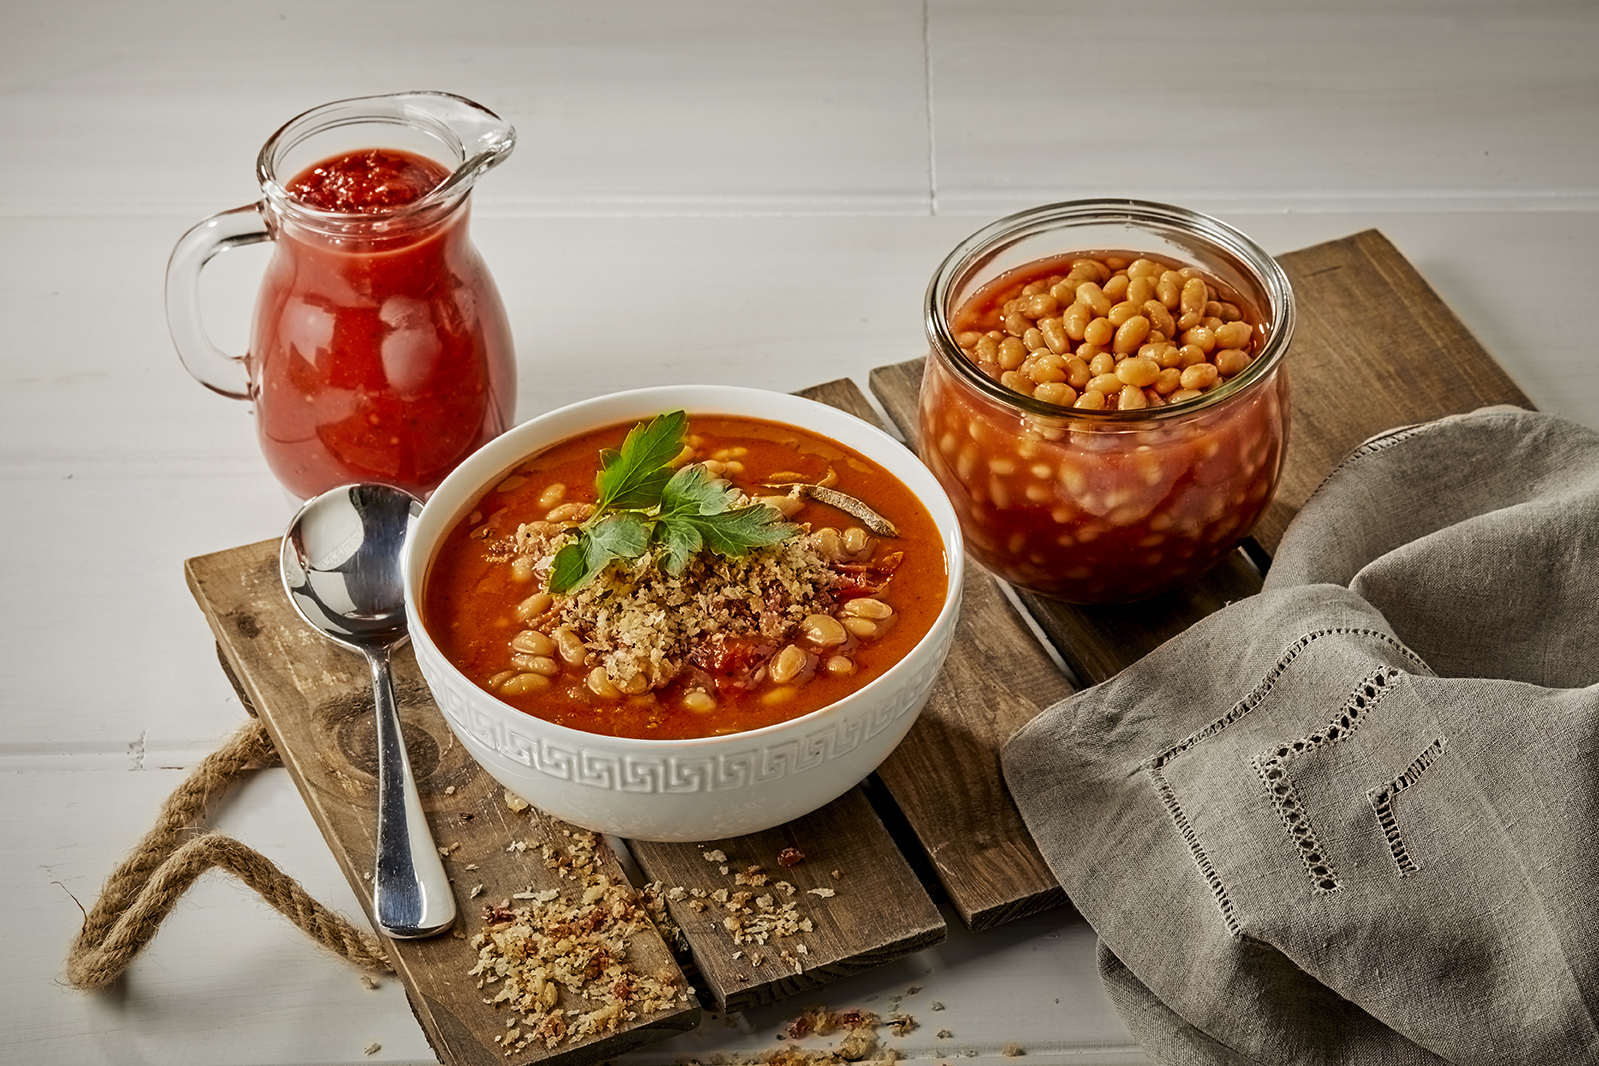 Smokey Tuscan Style Bean Soup with Bacon Crumbs